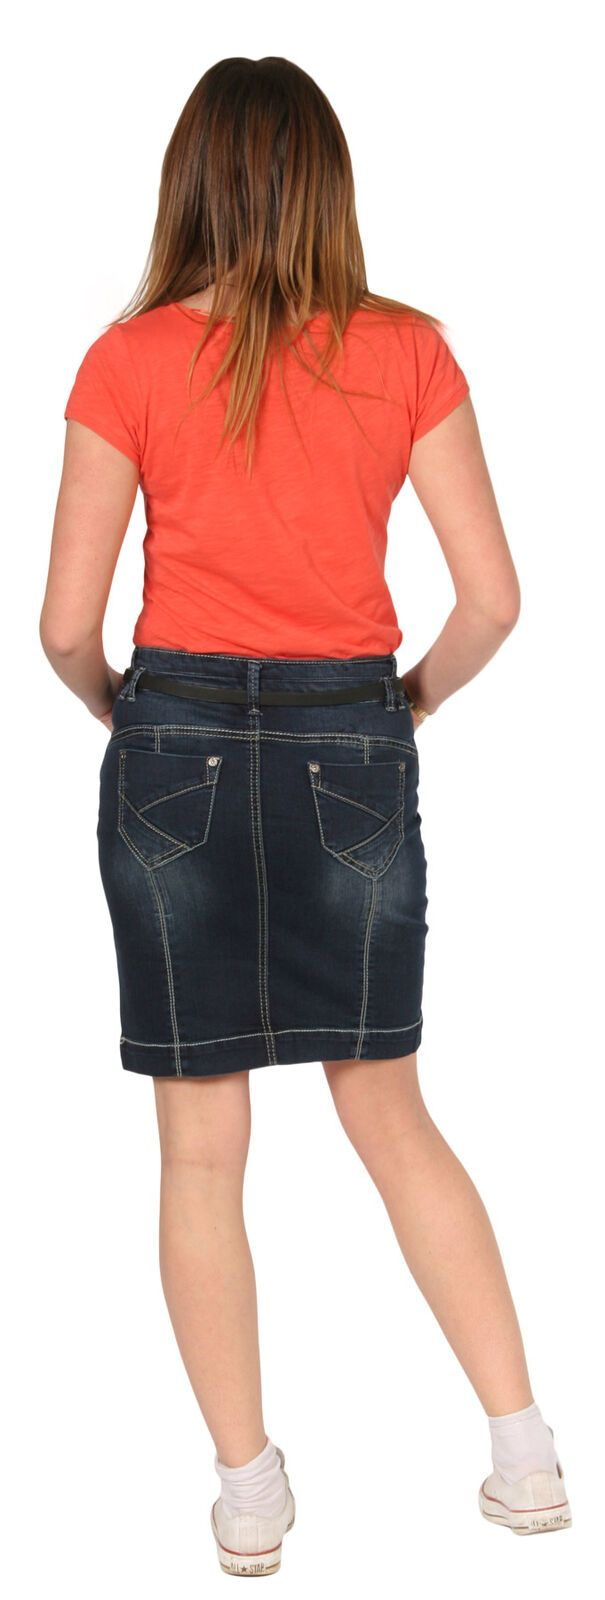 Full length back view of soft, medium weight, slightly stretchy denim skirt with view of rear pockets.